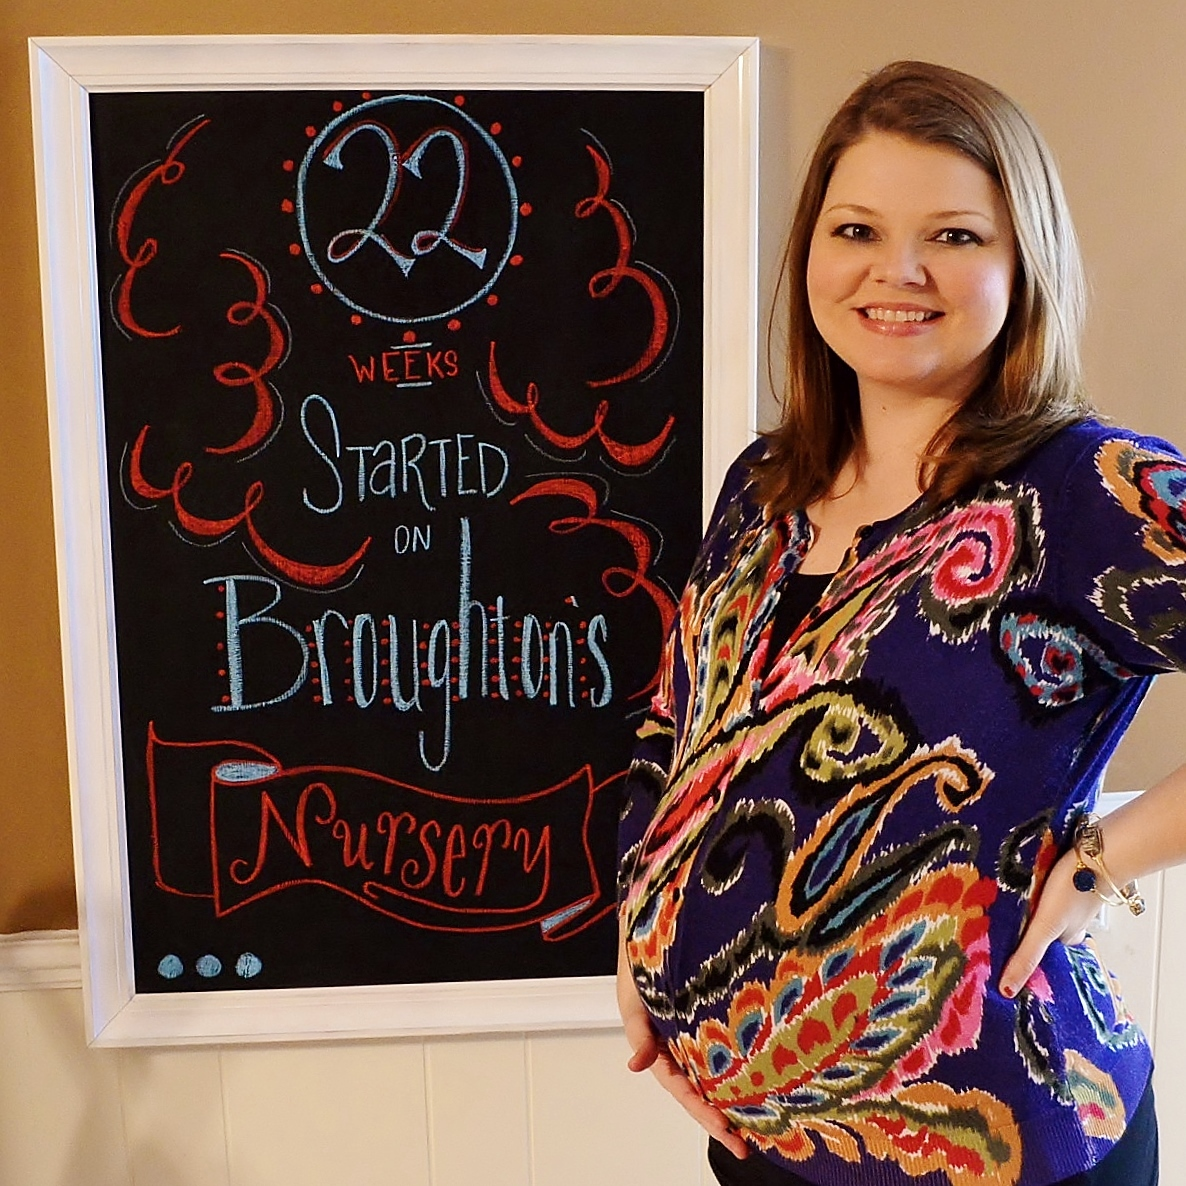 Pregnancy Chalkboard: 22 Weeks and Starting on the Nursery